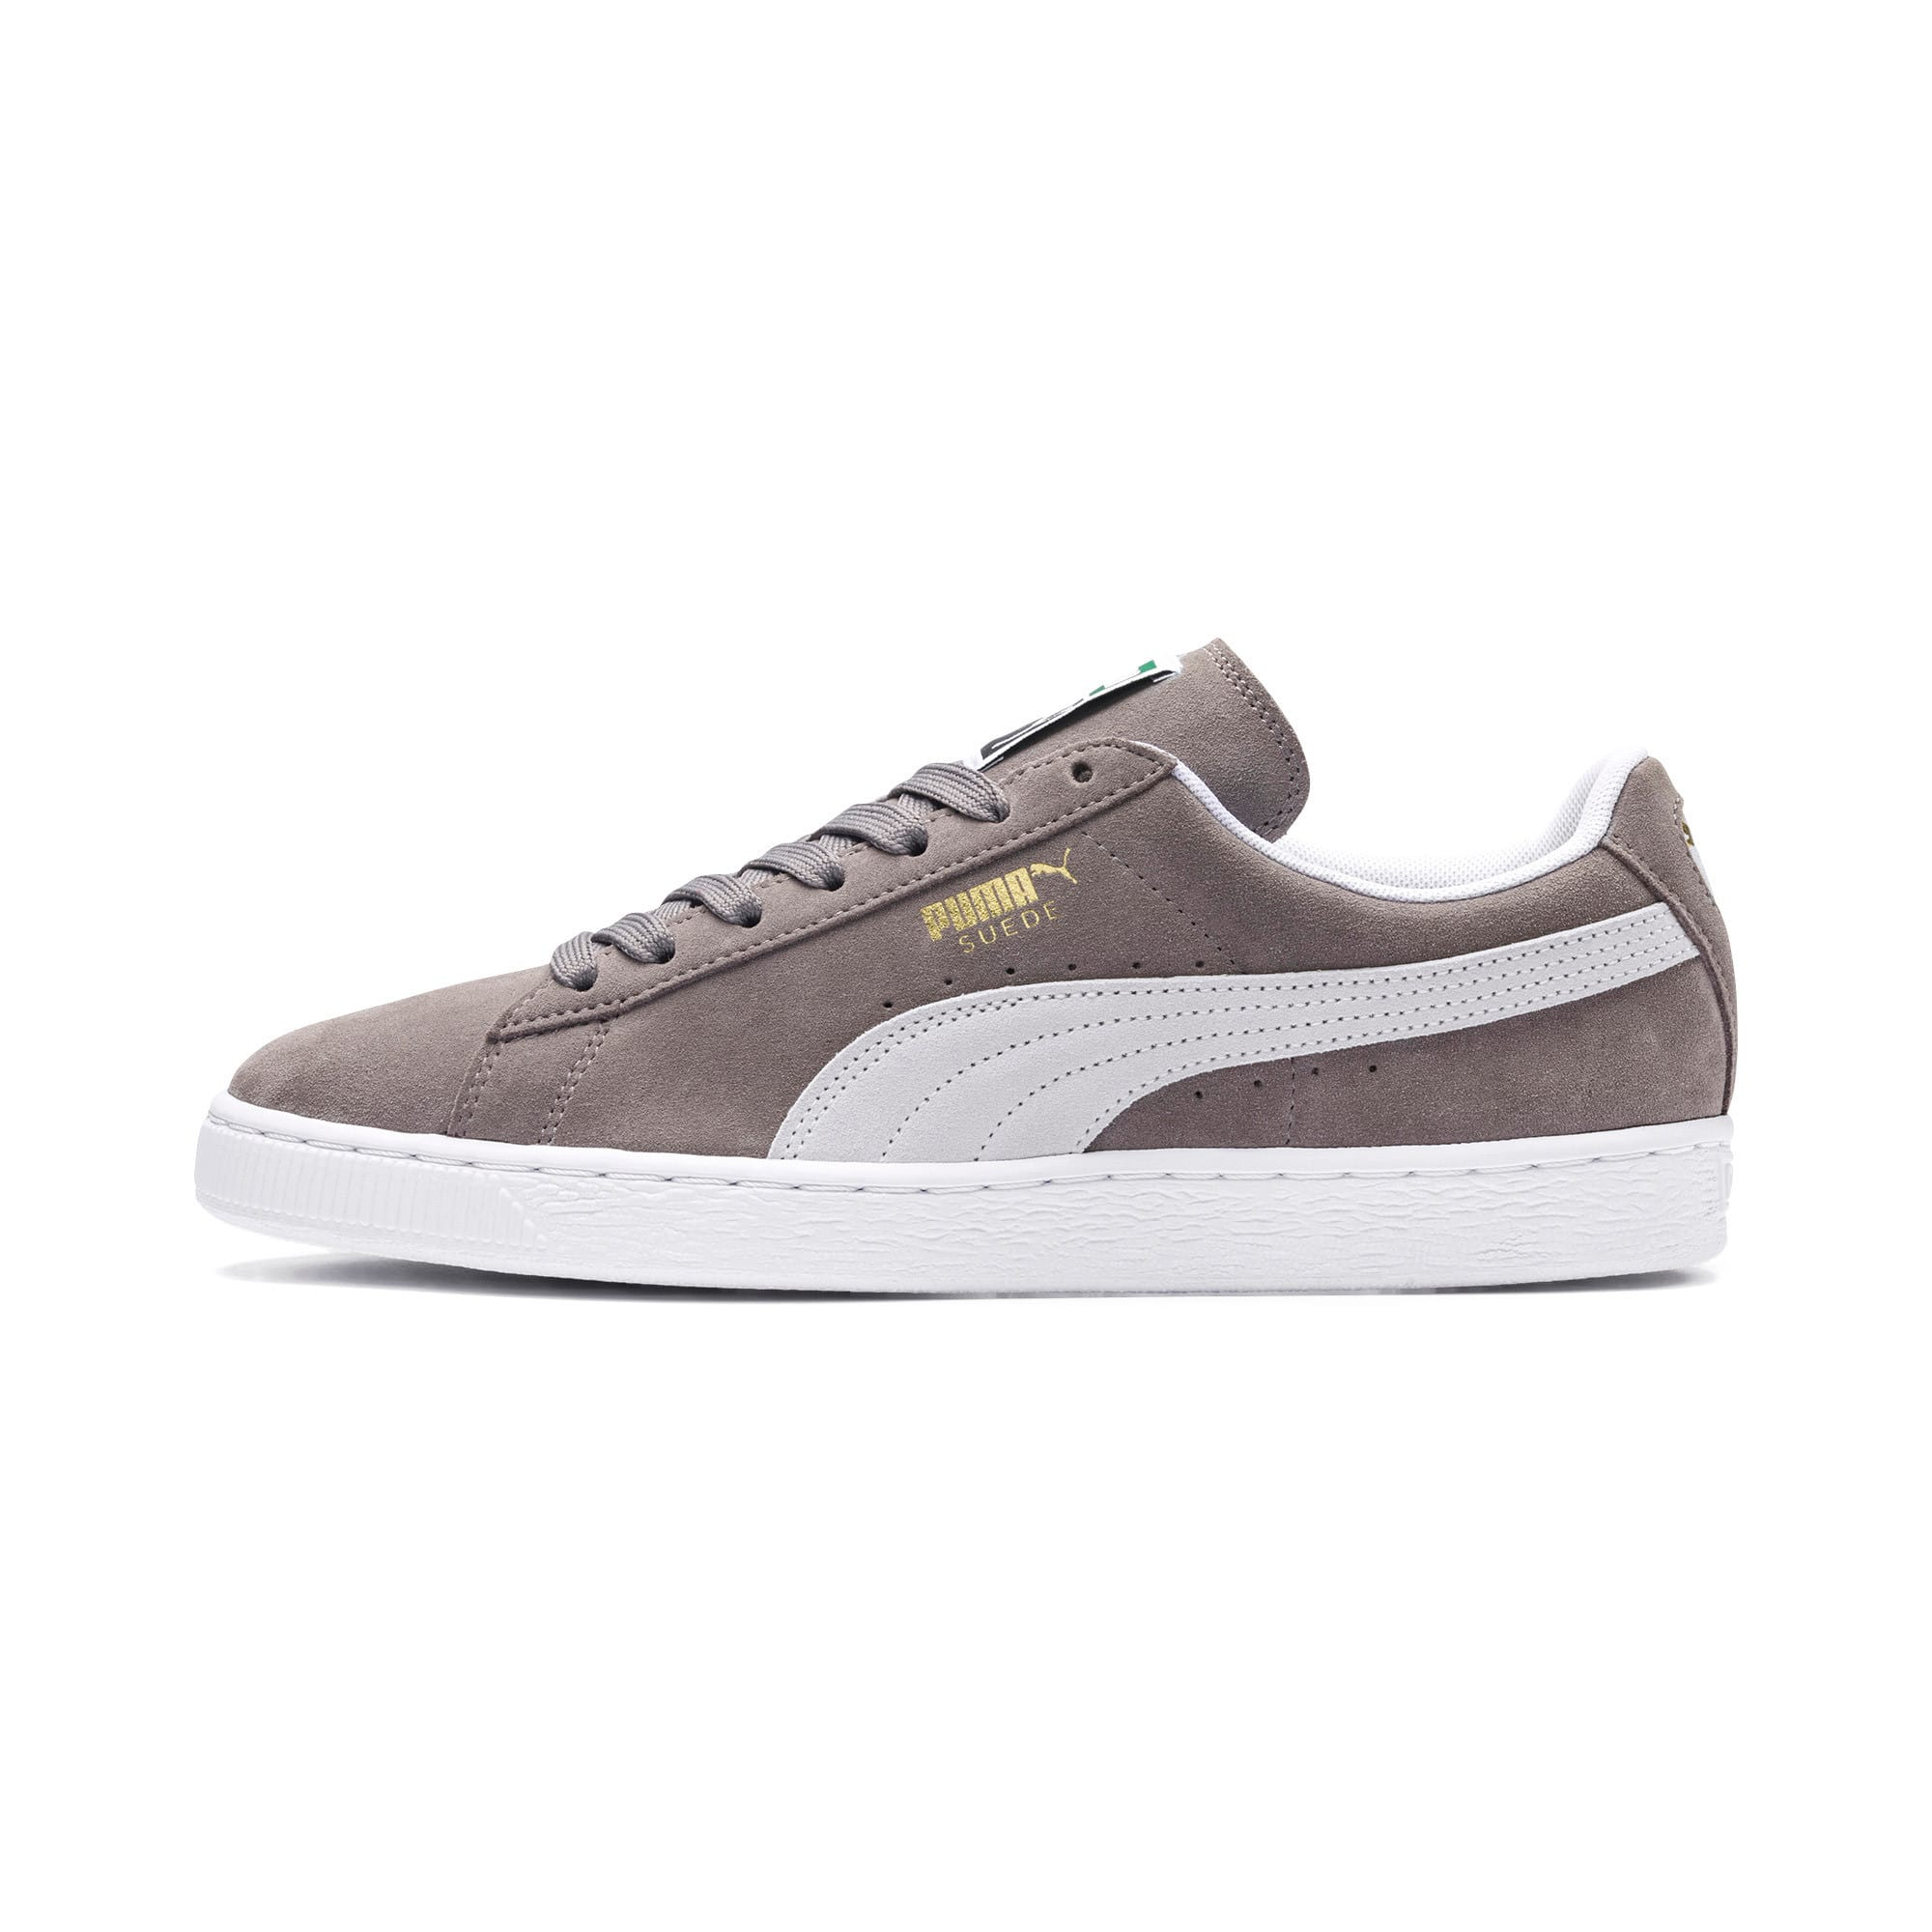 Thumbnail 1 of Suede Classic+ Sneakers, steeple gray-white, medium